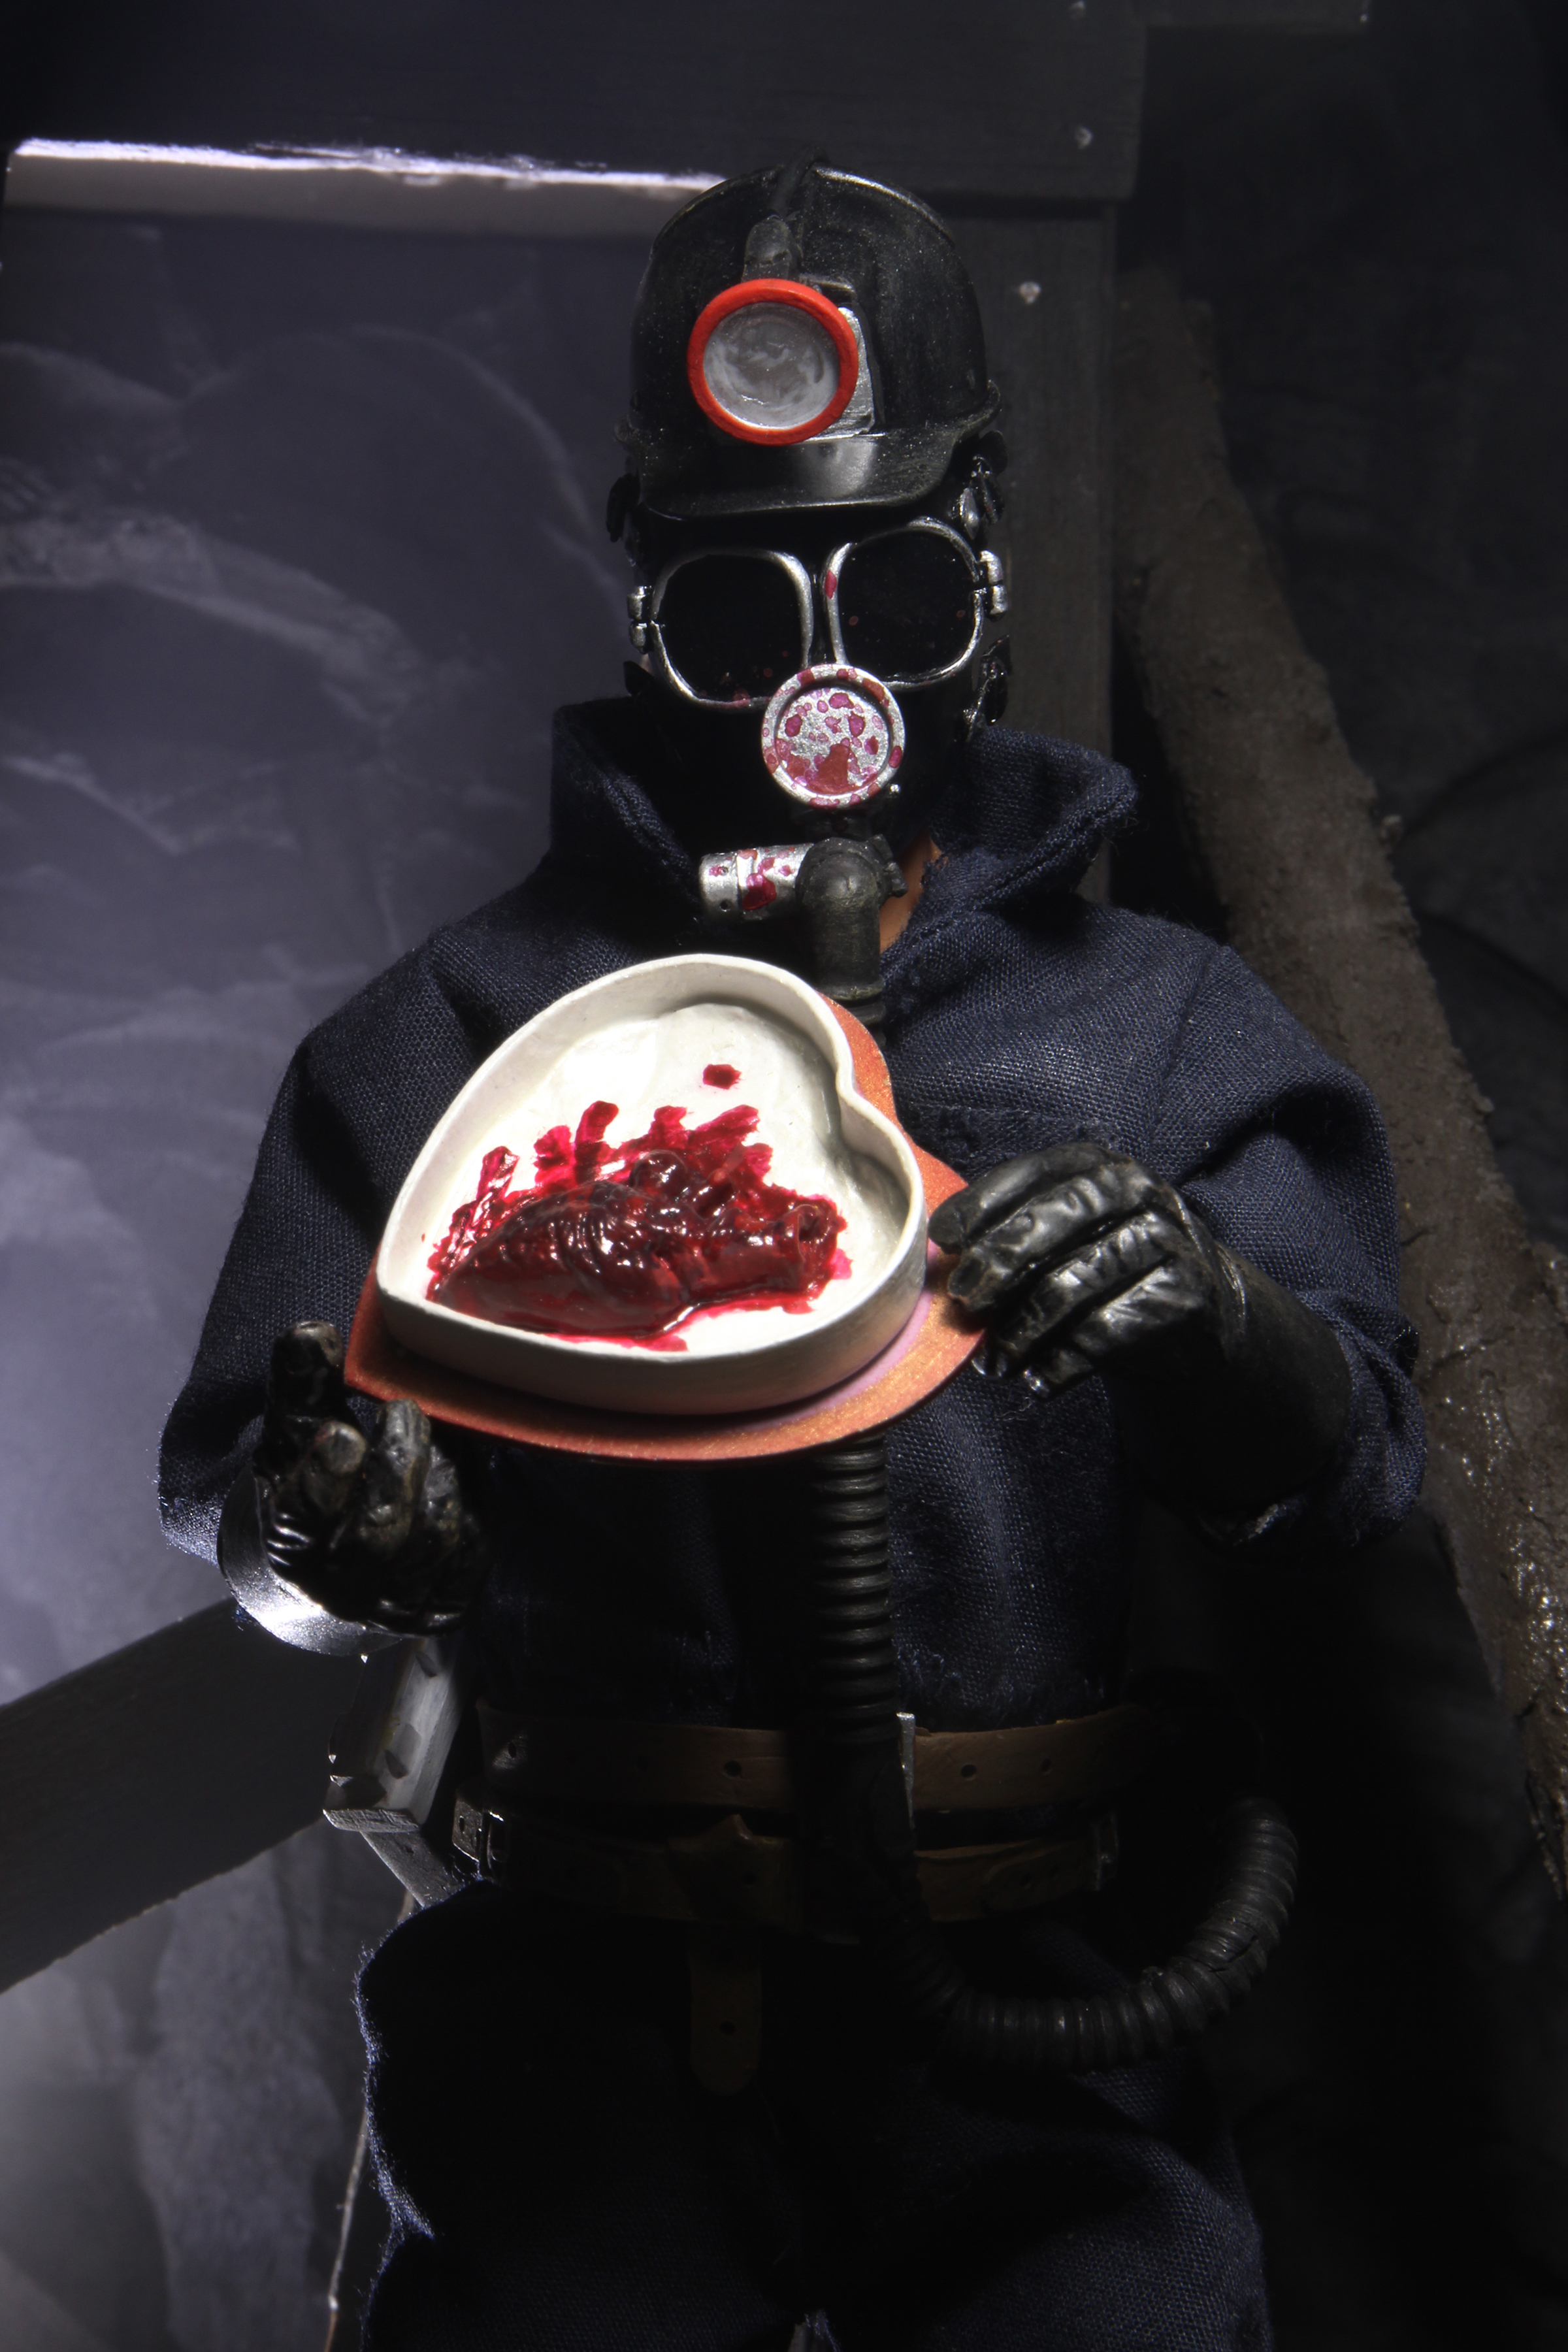 My Bloody Valentine [Deluxe Limited Edition Steelbook with Exclusive Action Figure] (SOLD OUT)